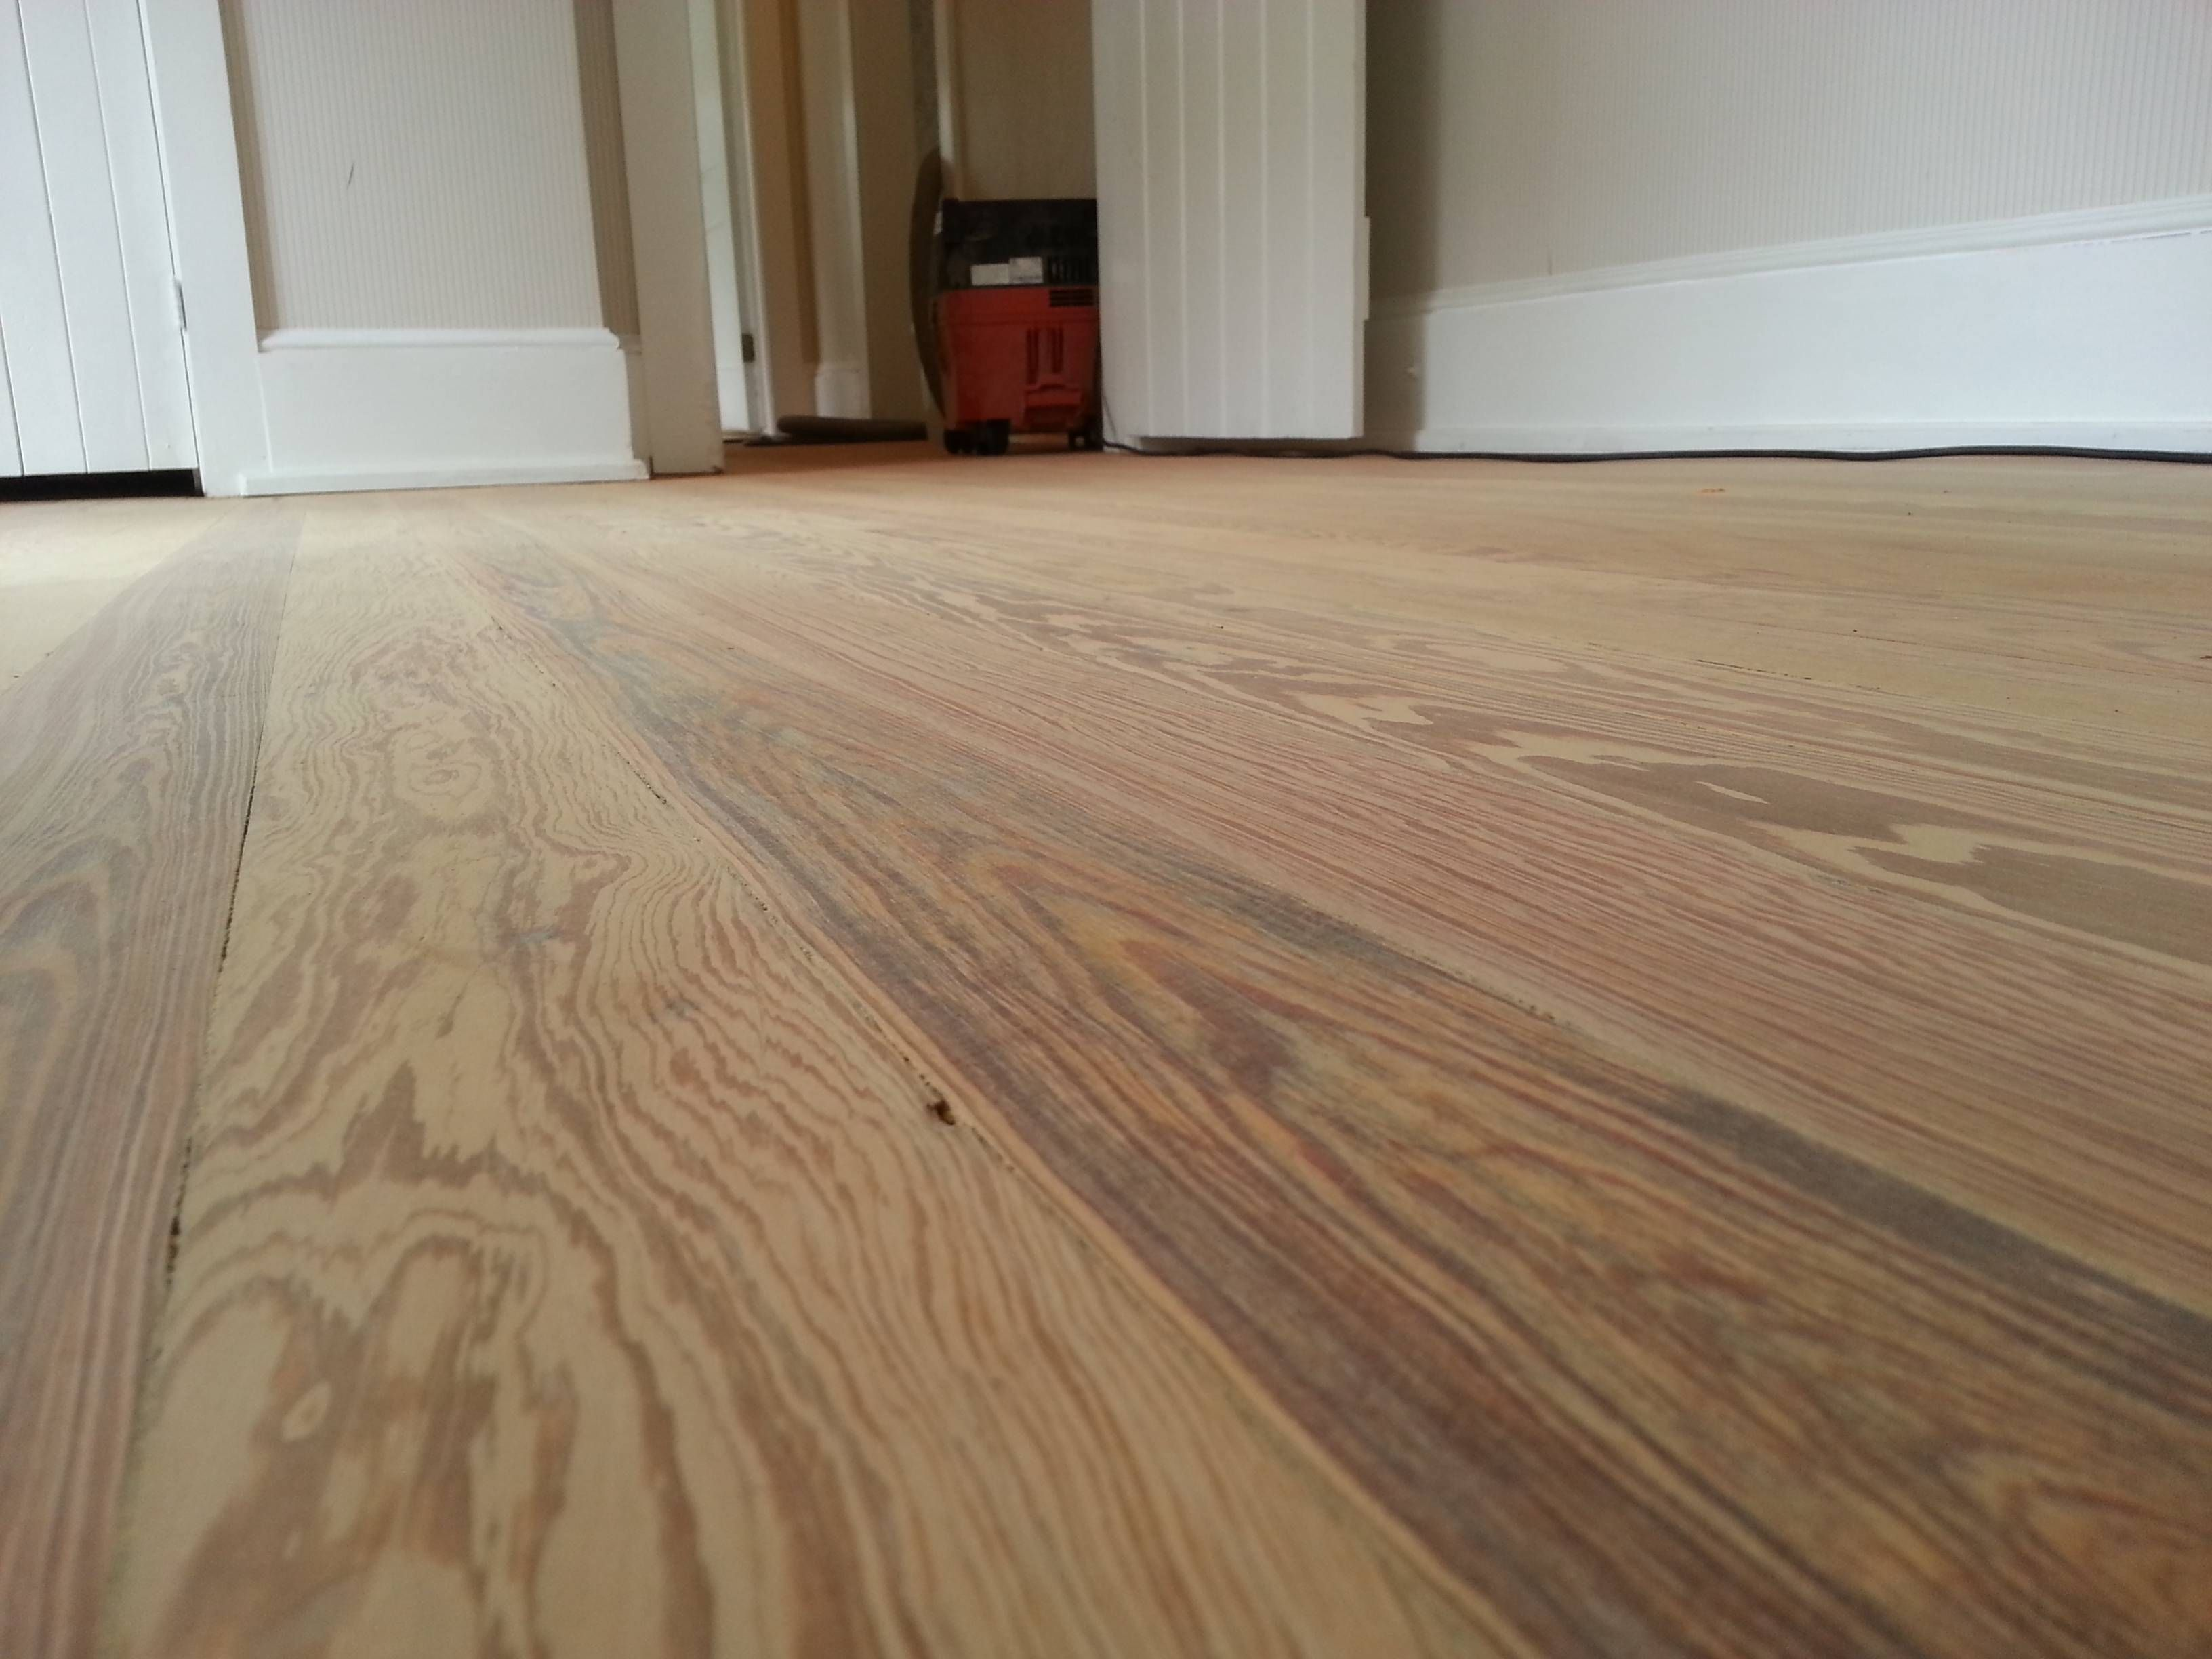 Freshly Sanded Heart Pine Floor 120 Year Old Floor Ready